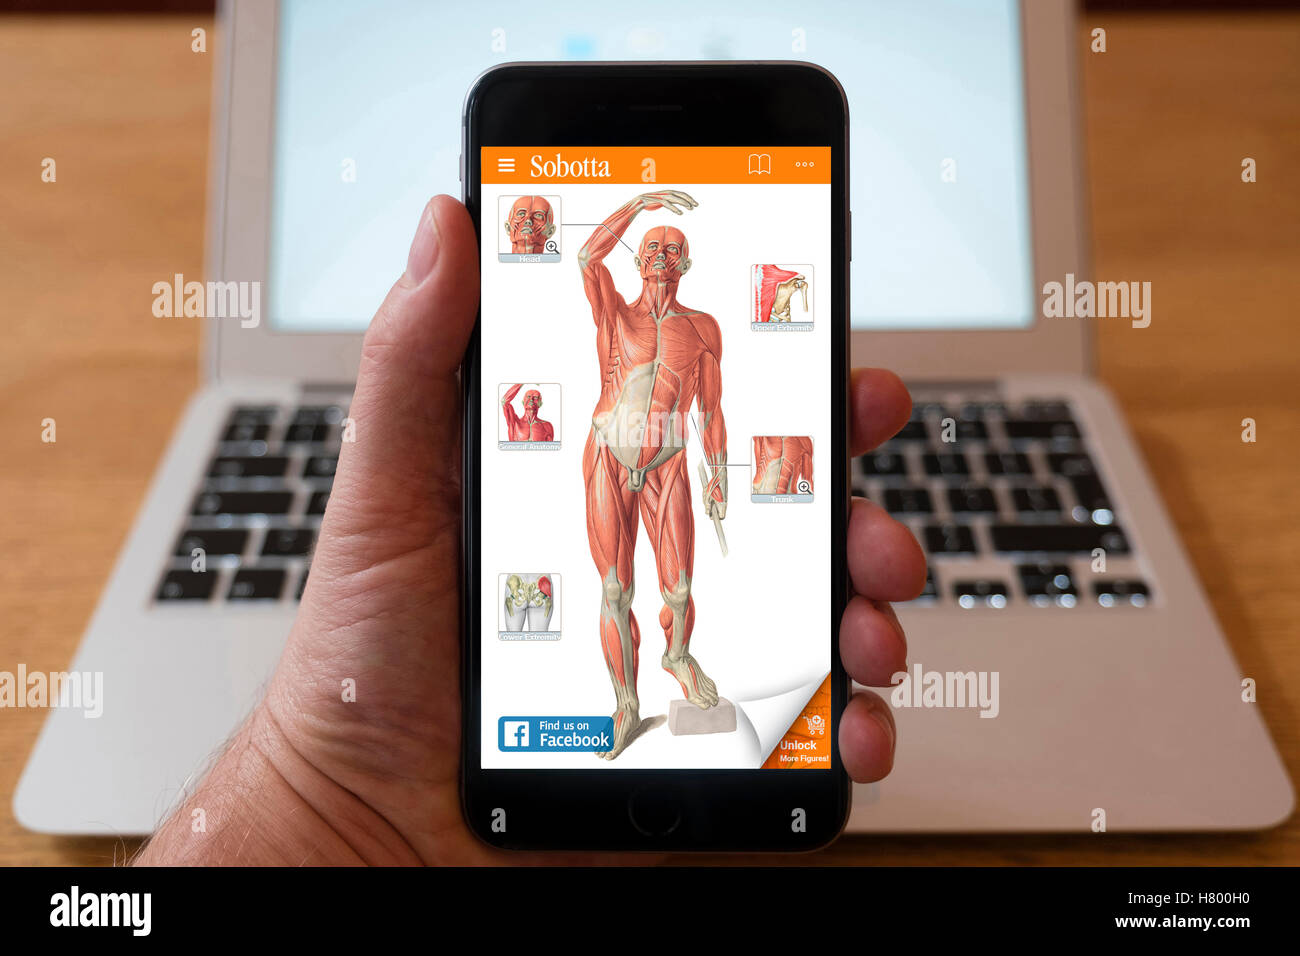 Using iPhone smartphone to display anatomy educational app of human body. - Stock Image